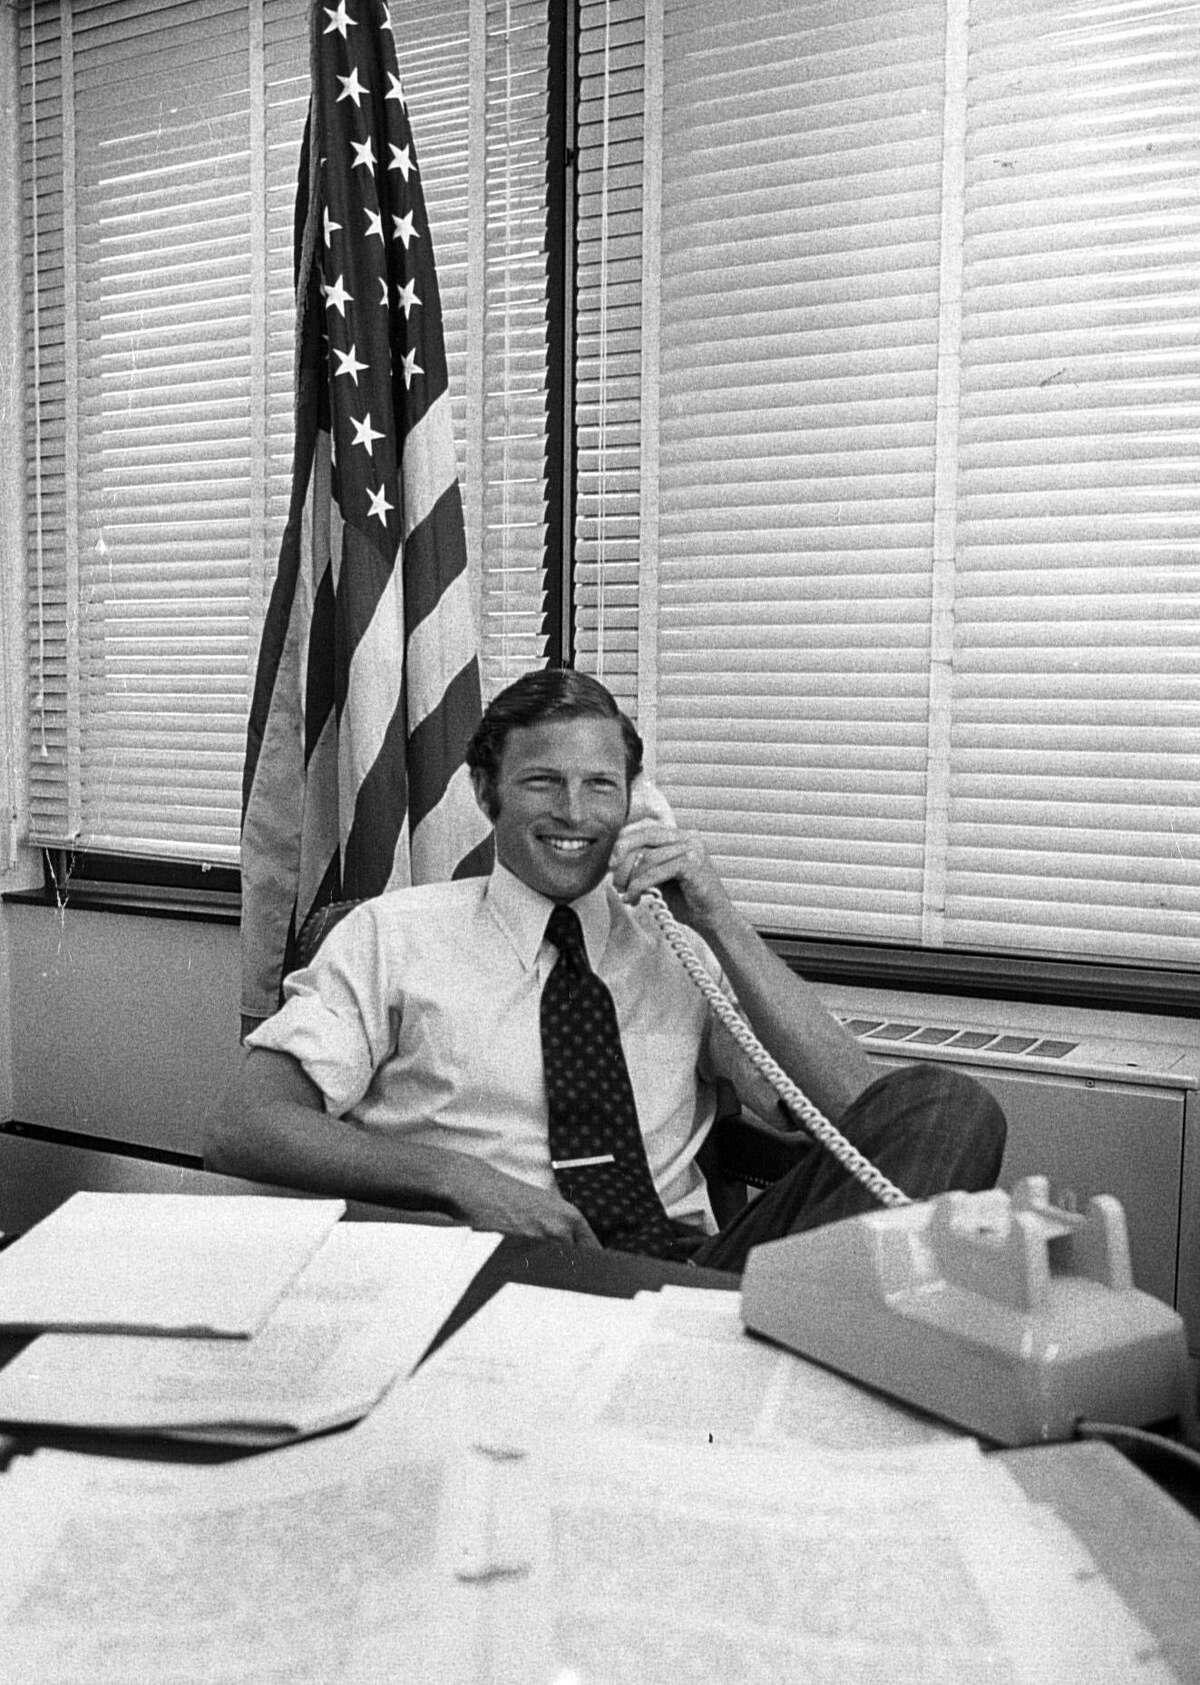 Richard Blumenthal, US Attorney for the District of Connecticut in 1978.